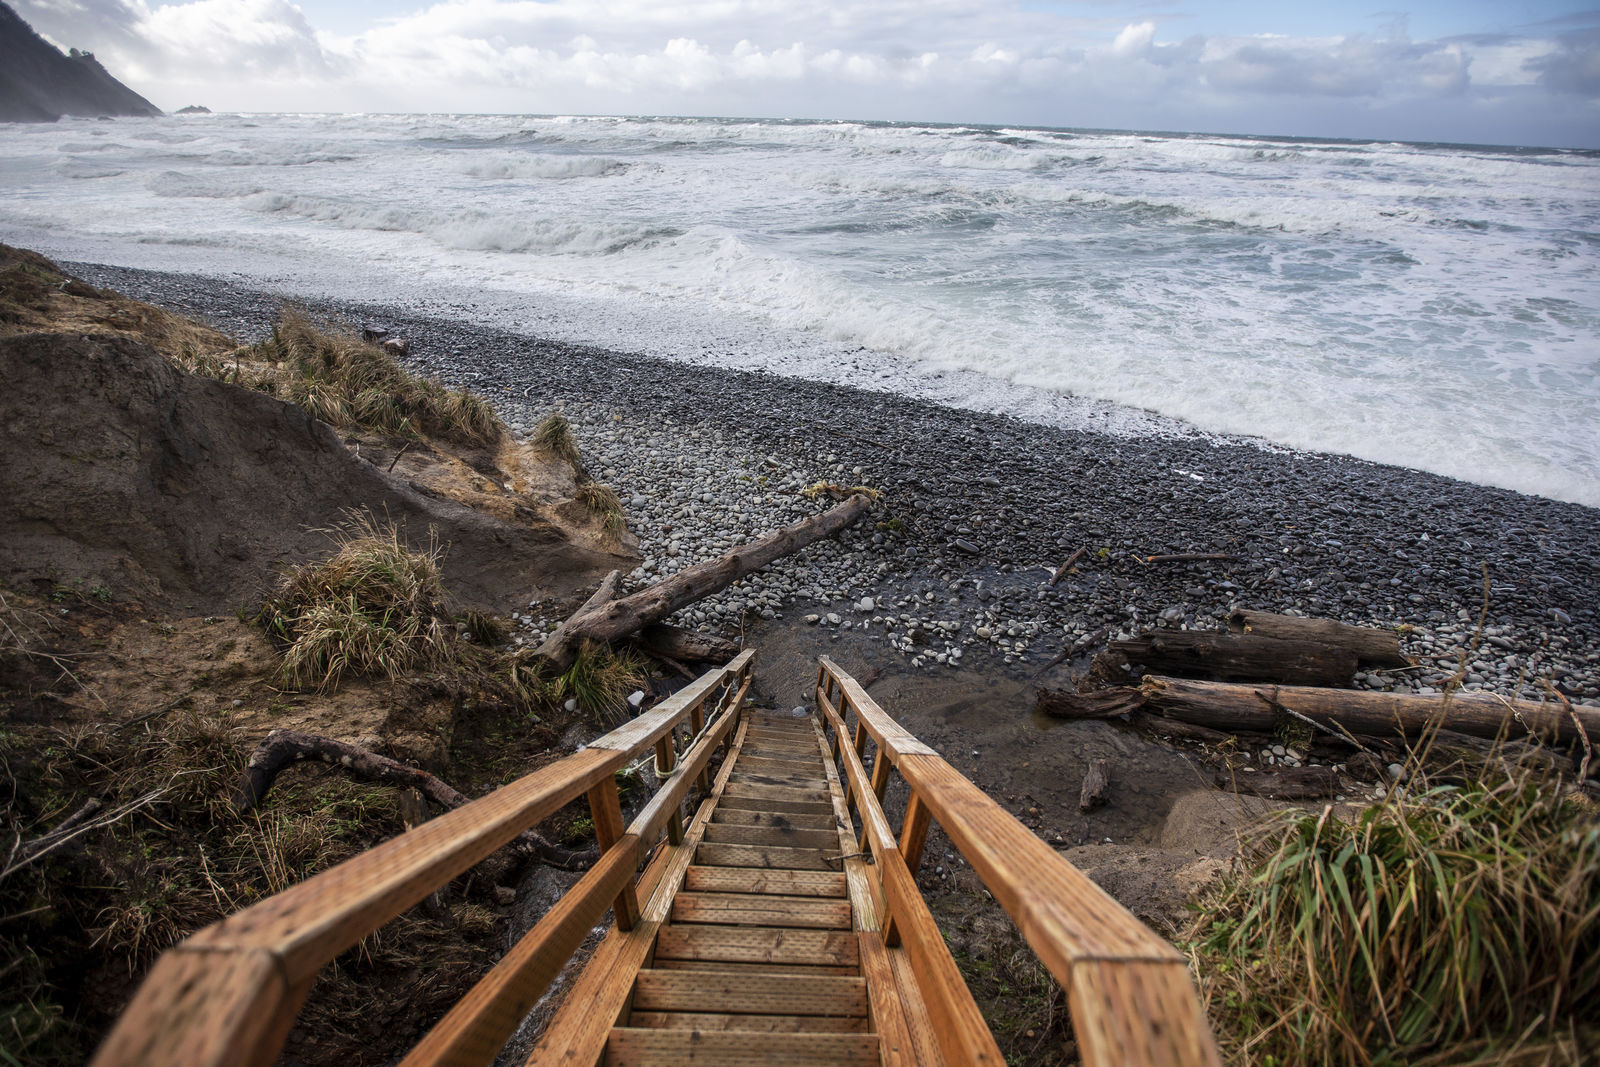 In this Sunday, Jan. 12, 2020 photo, stairs lead down to Falcon Cove Beach between the unincorporated community of Arch Cape to the north and Oswald West State Park to the south in Clatsop County, Ore. A 7-year-old girl is dead and her 4-year-old brother is missing after they and their father were swept into the ocean on the Oregon coast amid a high-surf warning. Authorities say the father was holding the two children when a wave swept all three into the water Saturday, Jan. 11 in the Falcon Cove area, south of the community of Cannon Beach. (Mark Graves/The Oregonian via AP)